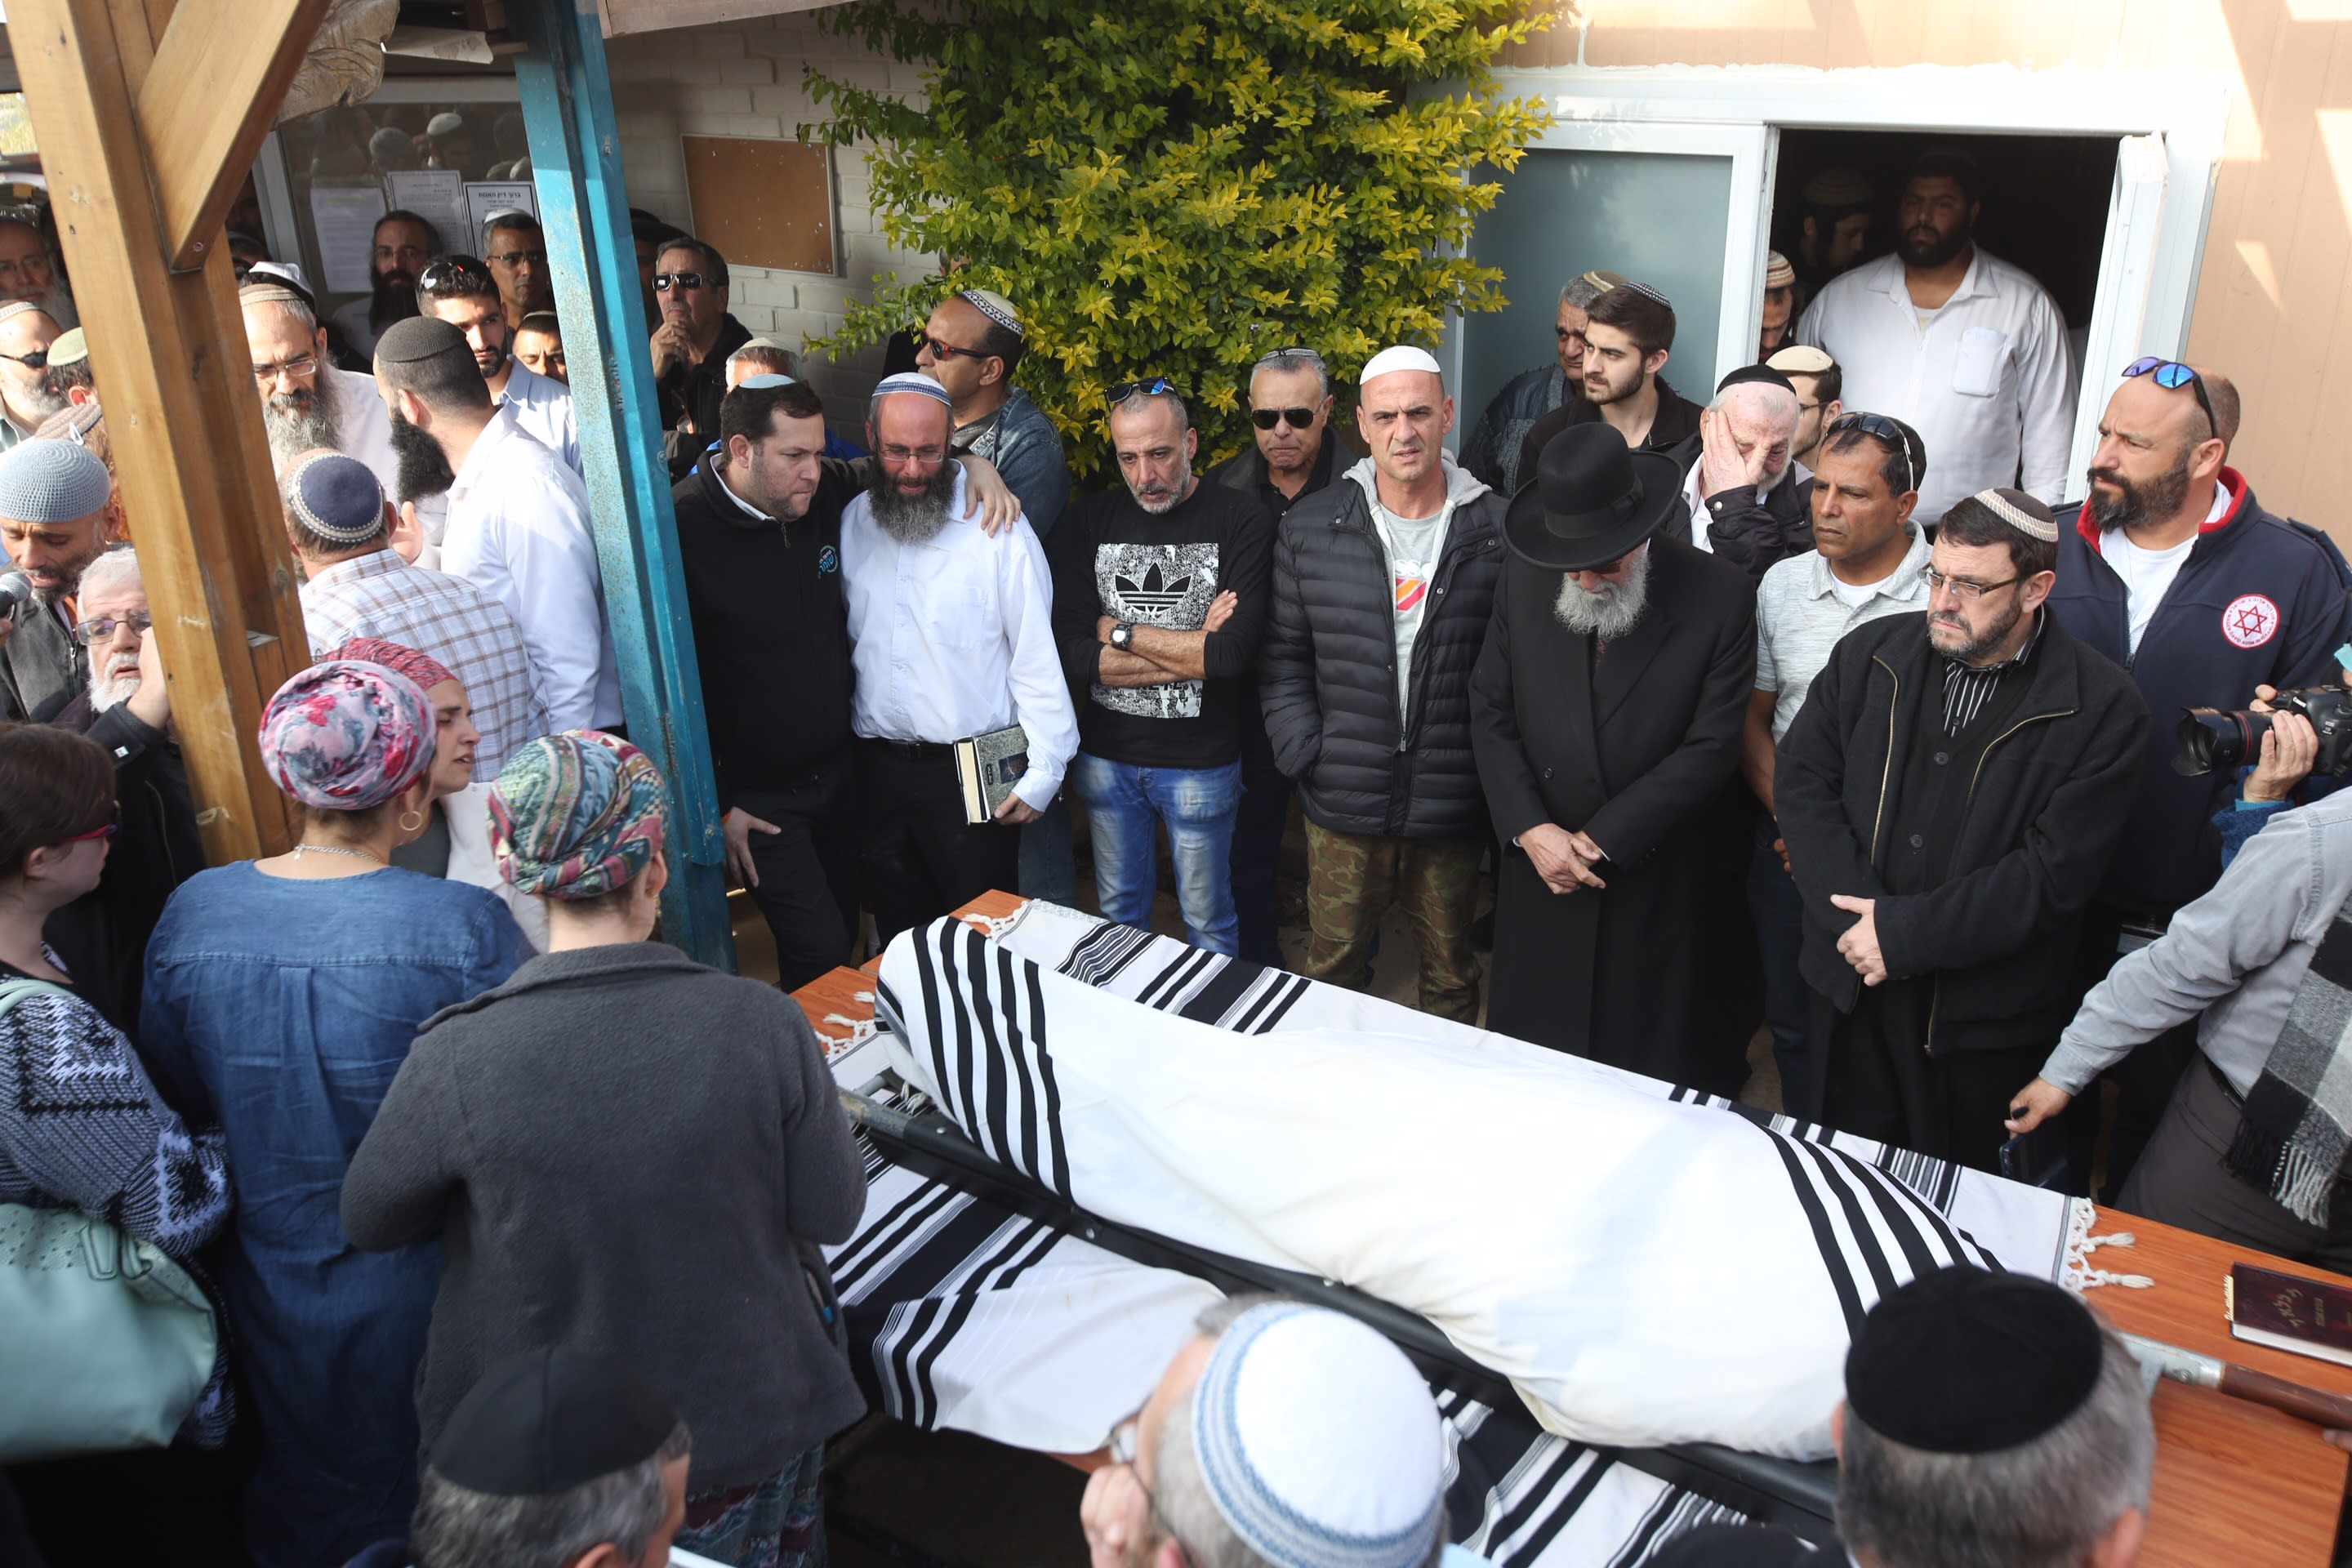 Funeral of Rabbi Raziel Shevach, murdered in West Bank terror attack shooting, January 10, 2017. (MARC ISRAEL SELLEM)